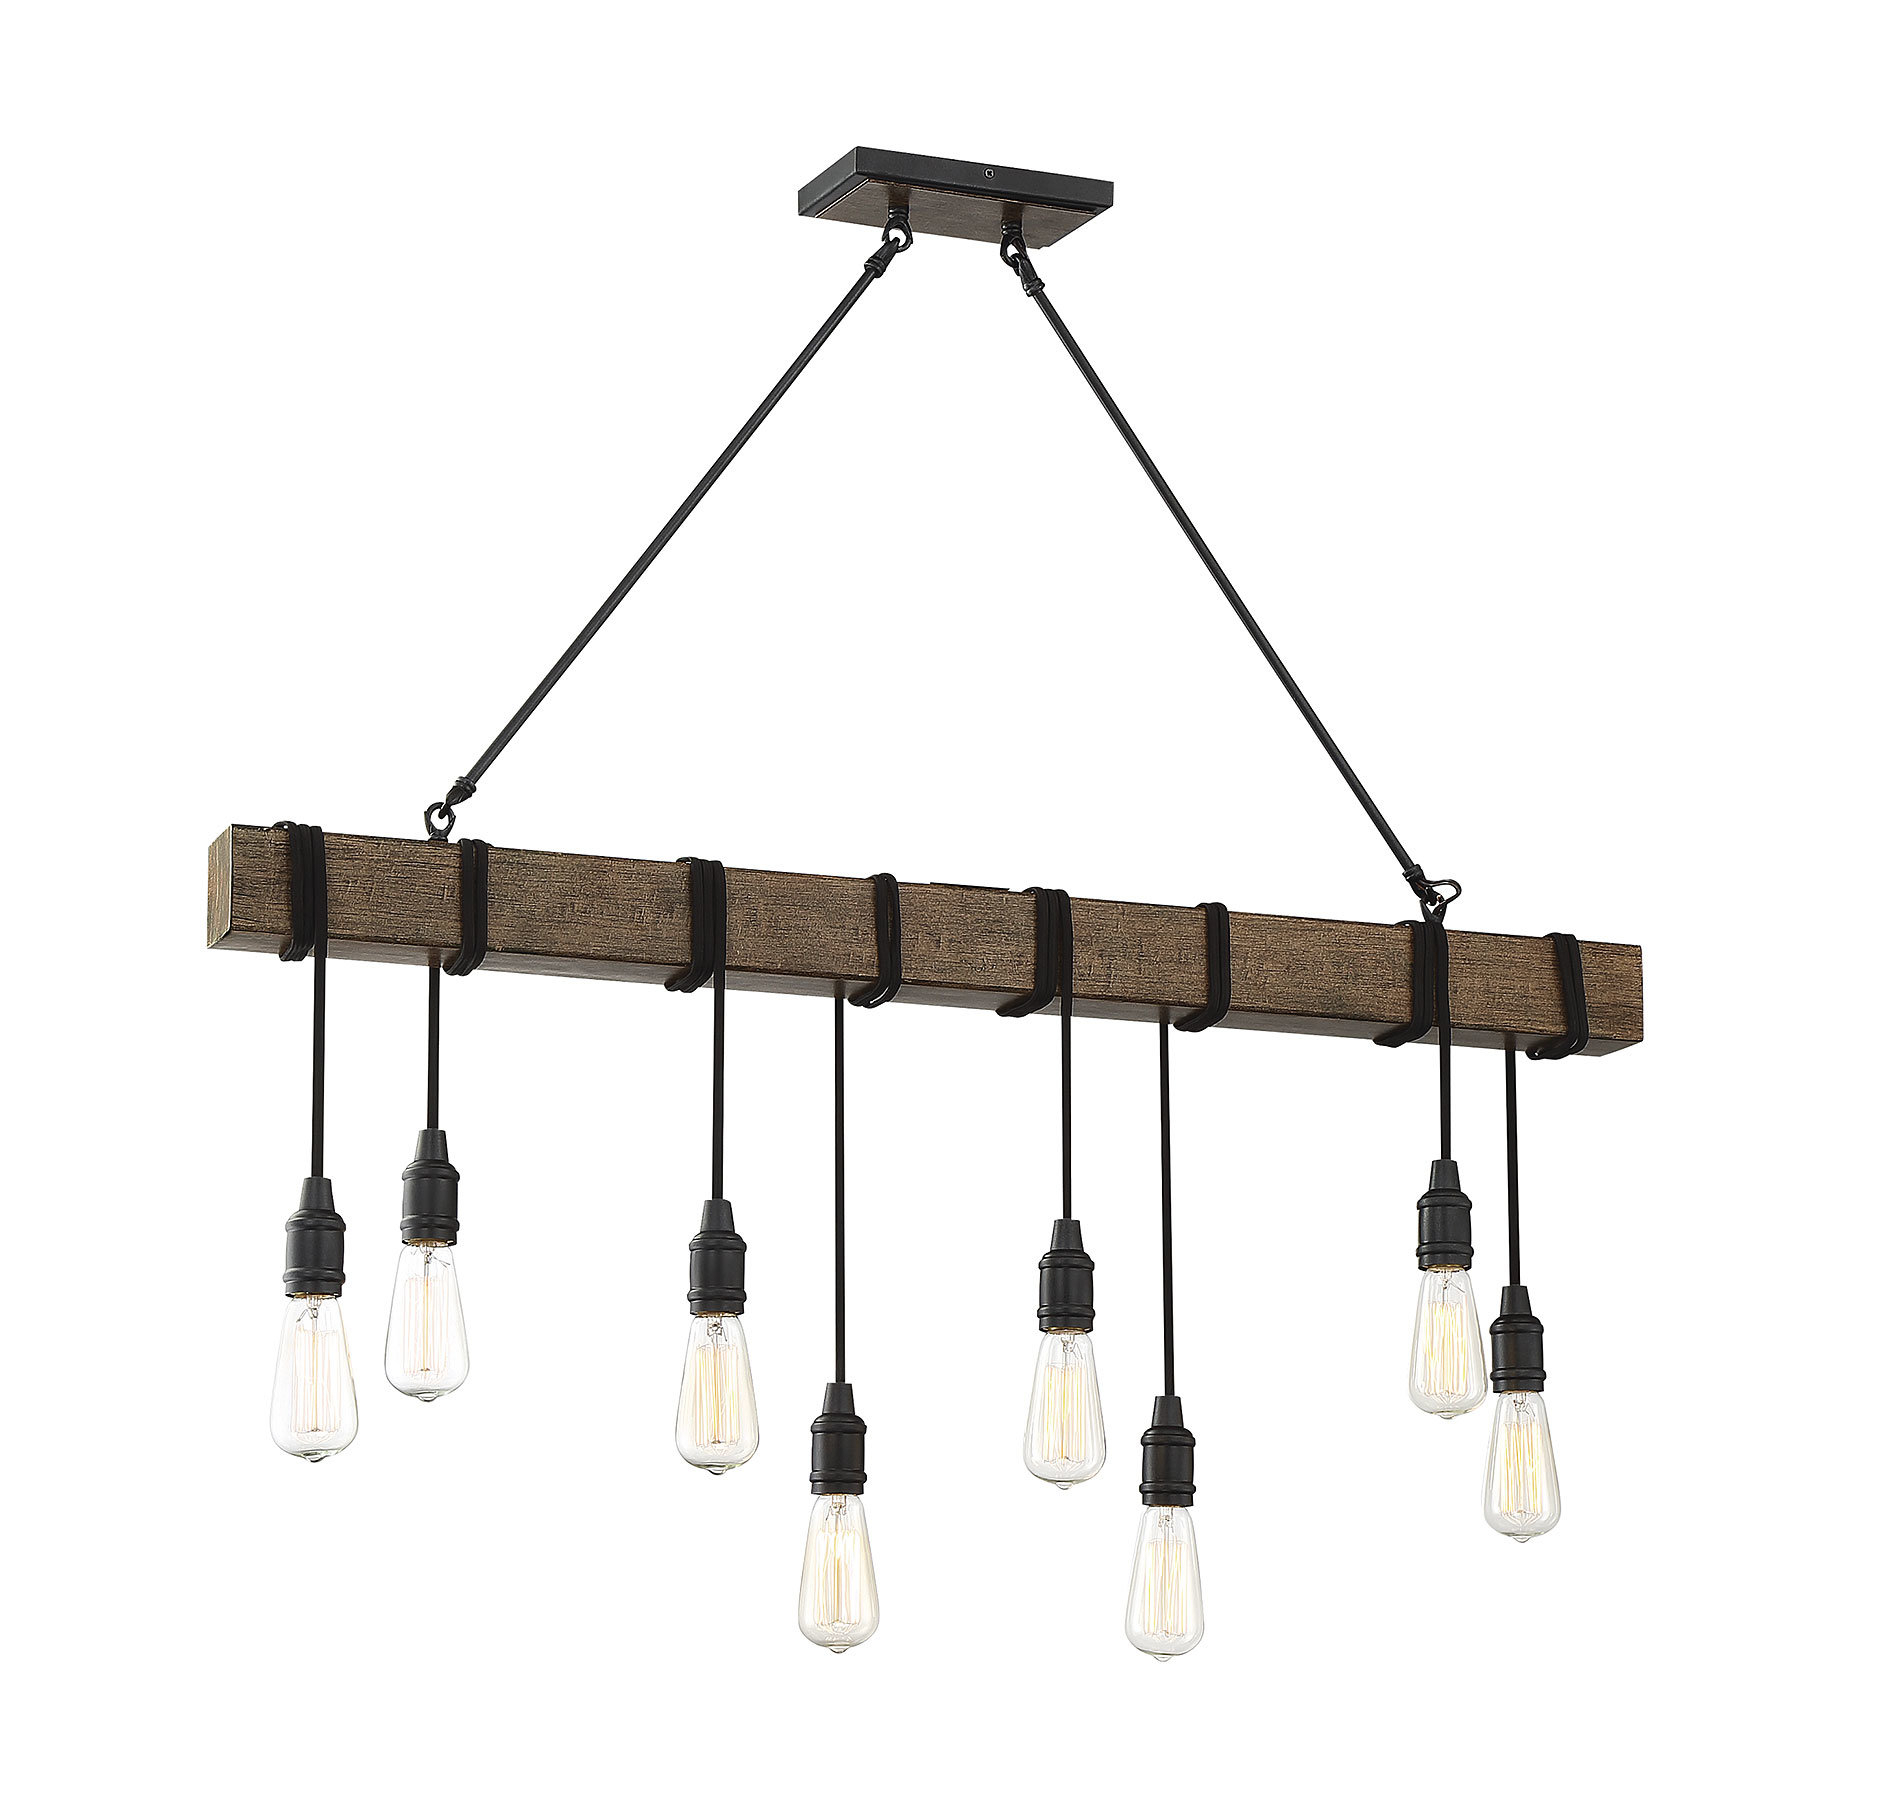 Modern & Contemporary Edison Bulb Pendant | Allmodern With Bryker 1 Light Single Bulb Pendants (View 19 of 30)